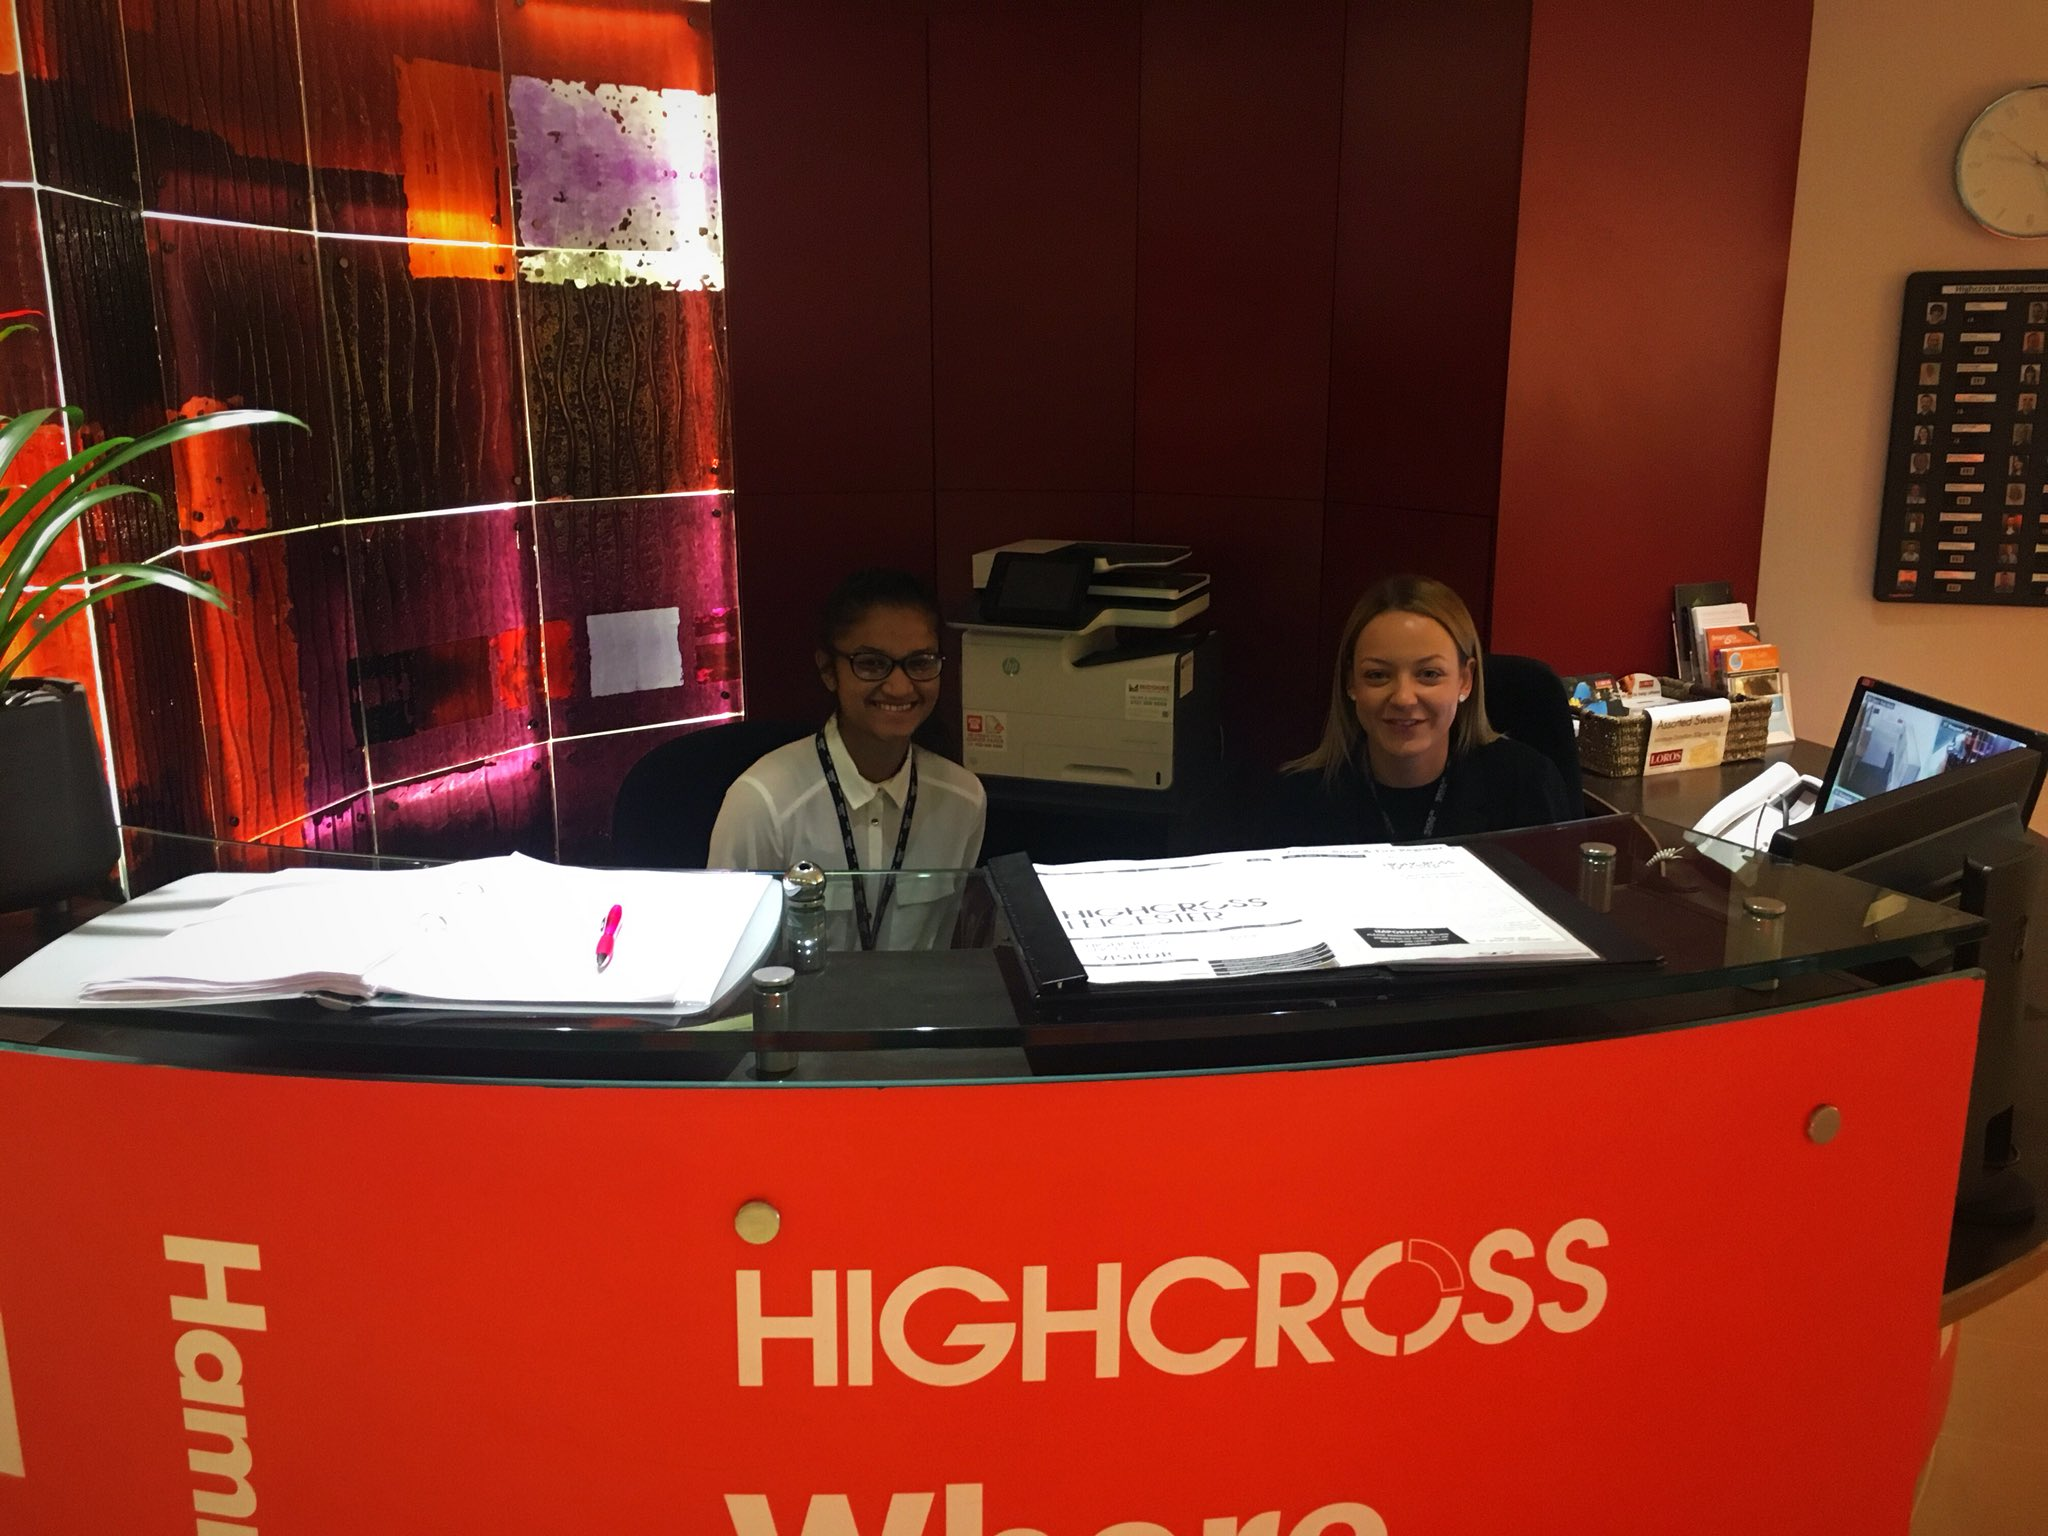 It's our @rusheymeadnews #WorkExperience #placement working with Ella today. Welcoming visitors to @Highcross #ManagementSuite #worldofwork @CareerEnt https://t.co/ORfG0i8Lv4